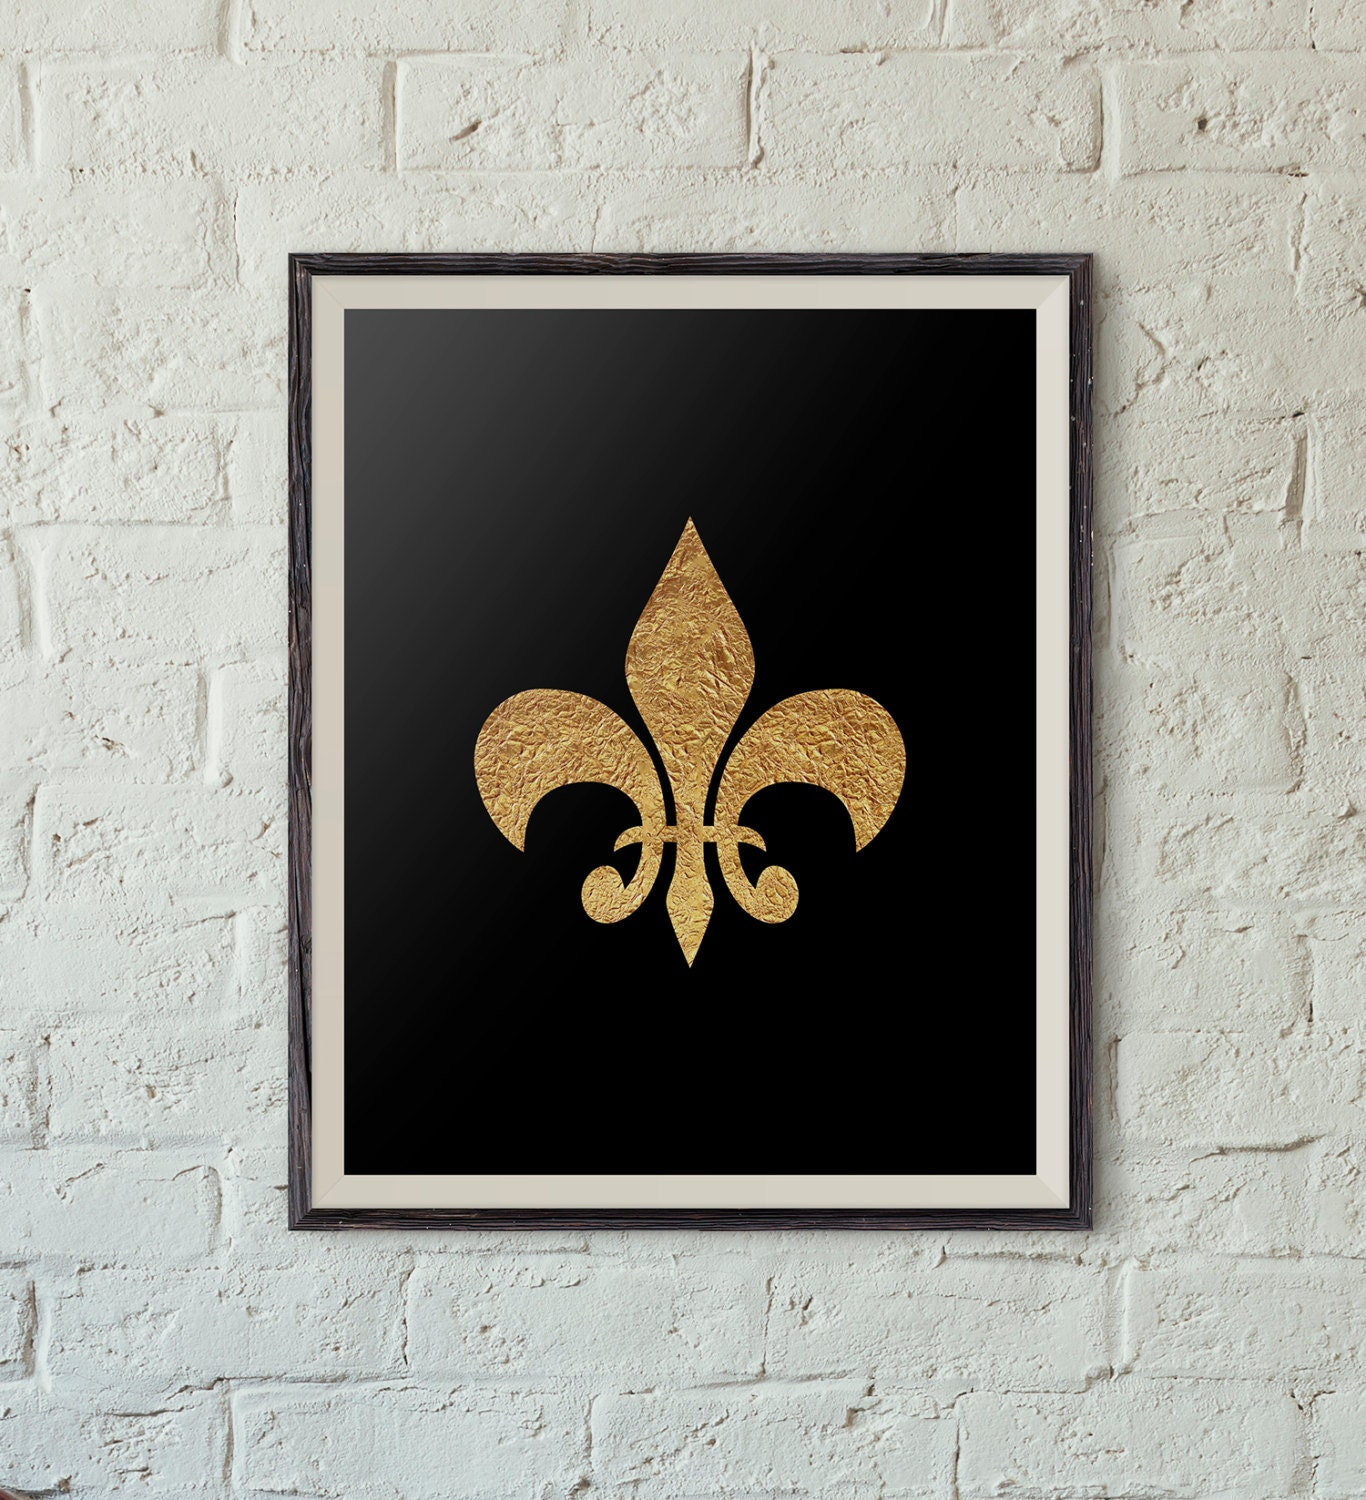 Wall Art Decor Gold : Printable wall art black and gold fleur de lis by